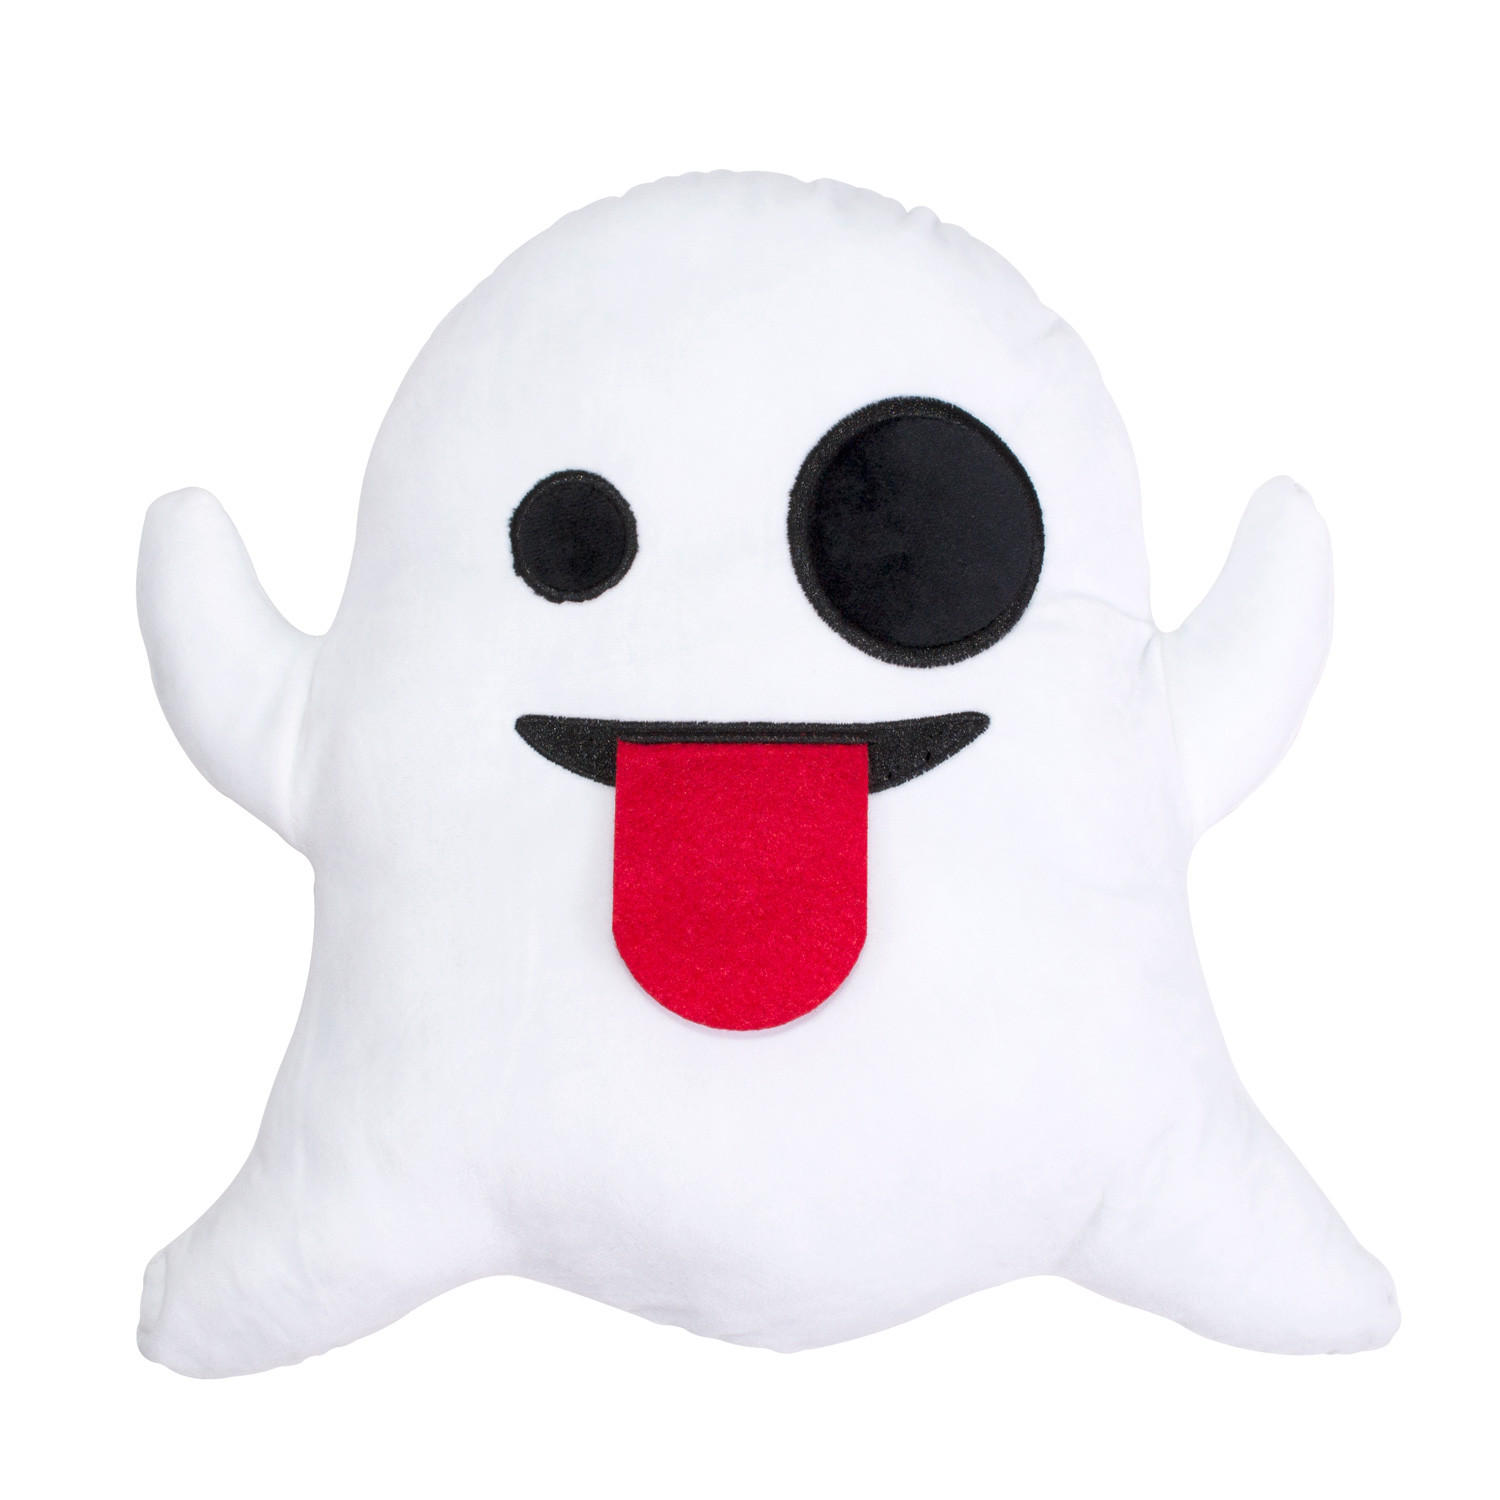 Ghost Emoji Pillow From Shelfies Pillows